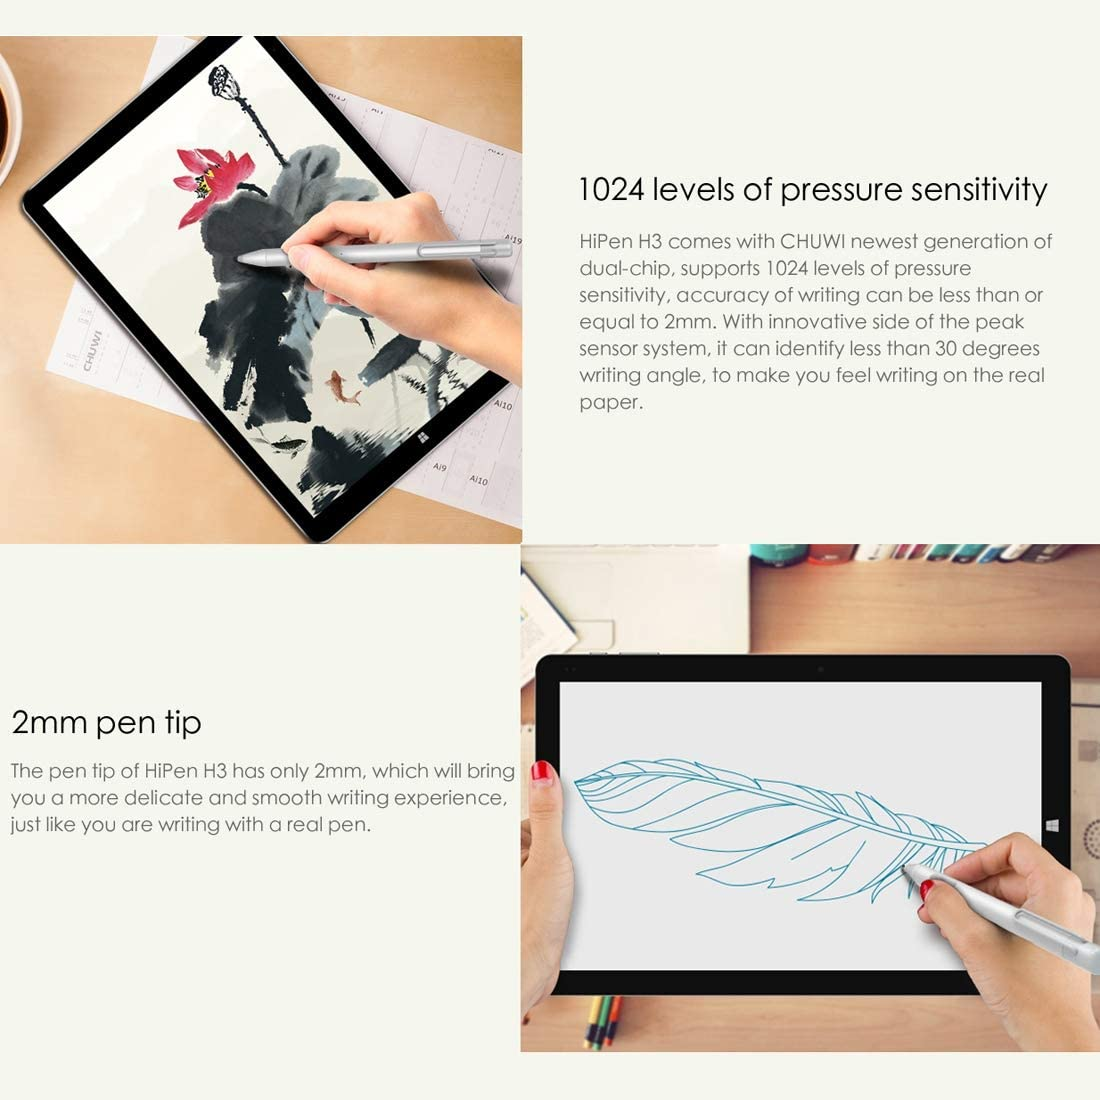 Silver /& Hi9 Plus WMC9562B MOBILL Touch Screen Stylus Pen 1024 Levels of Pressure Sensitivity Dual-chip Metal Body Active Stylus Pen with Auto Sleep Function WMC0035 for CHUWI Hi13 Tablet PC